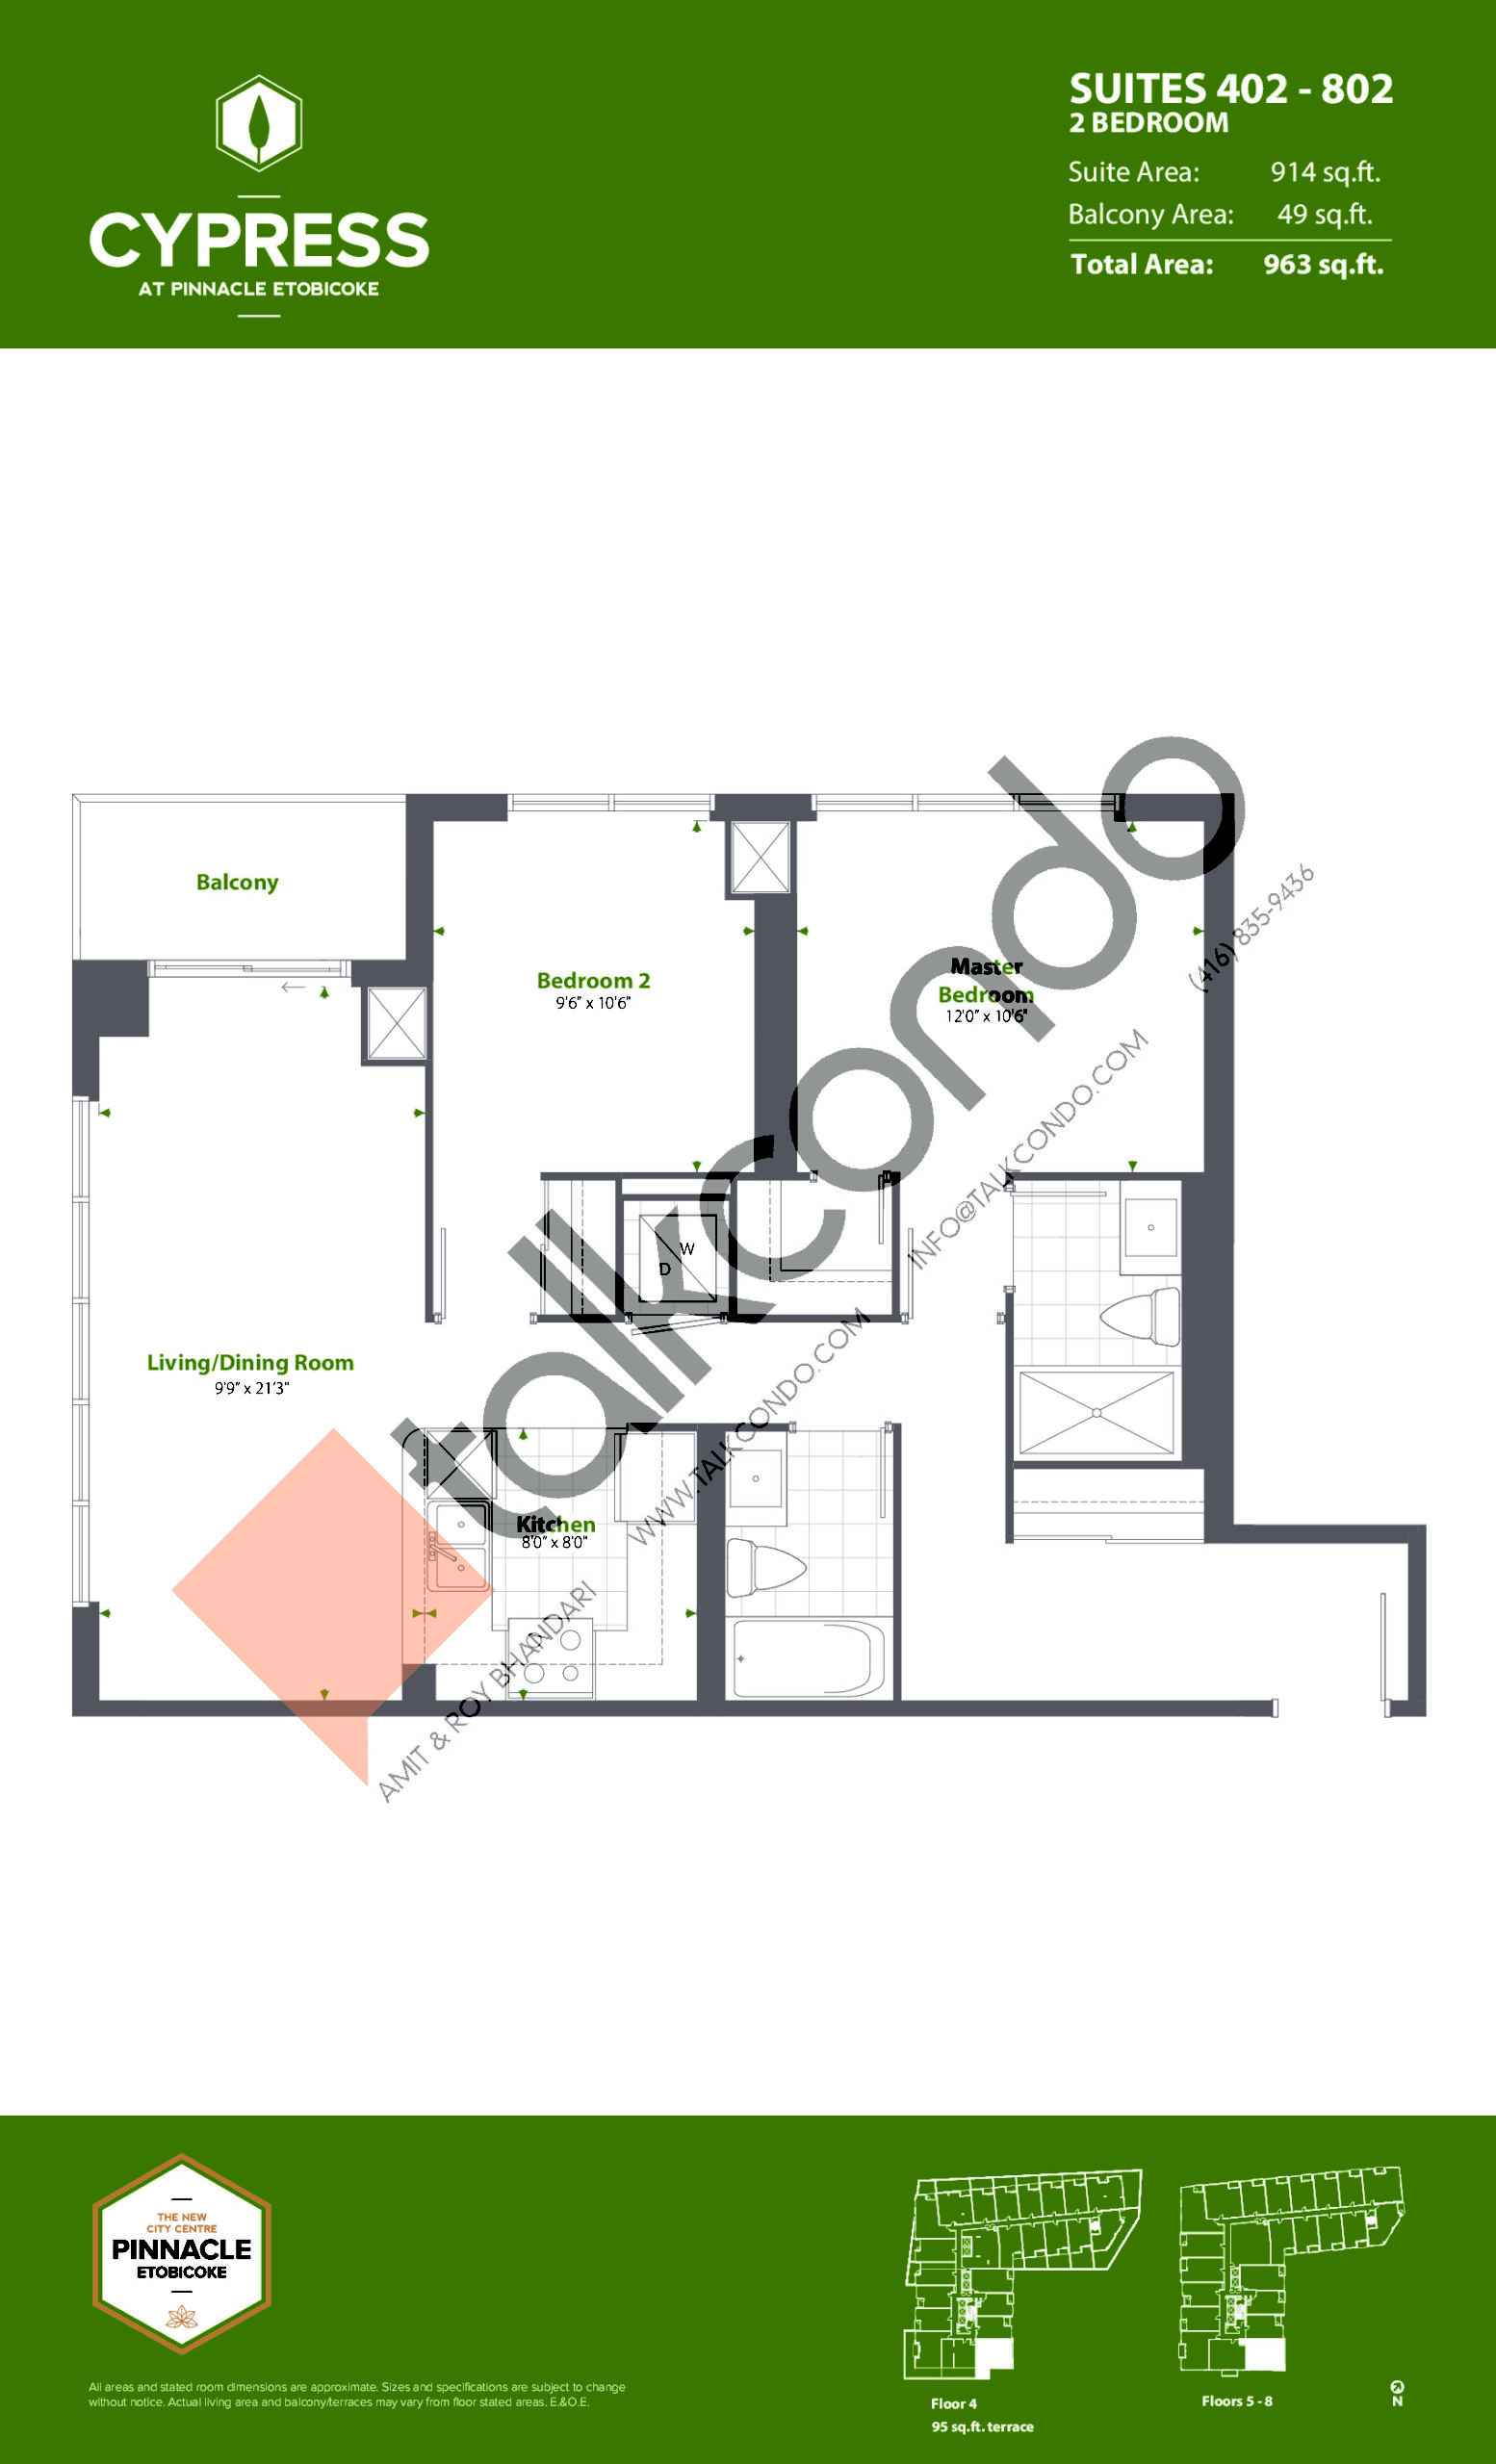 Suites 402 - 802 (Podium) Floor Plan at Cypress at Pinnacle Etobicoke - 914 sq.ft